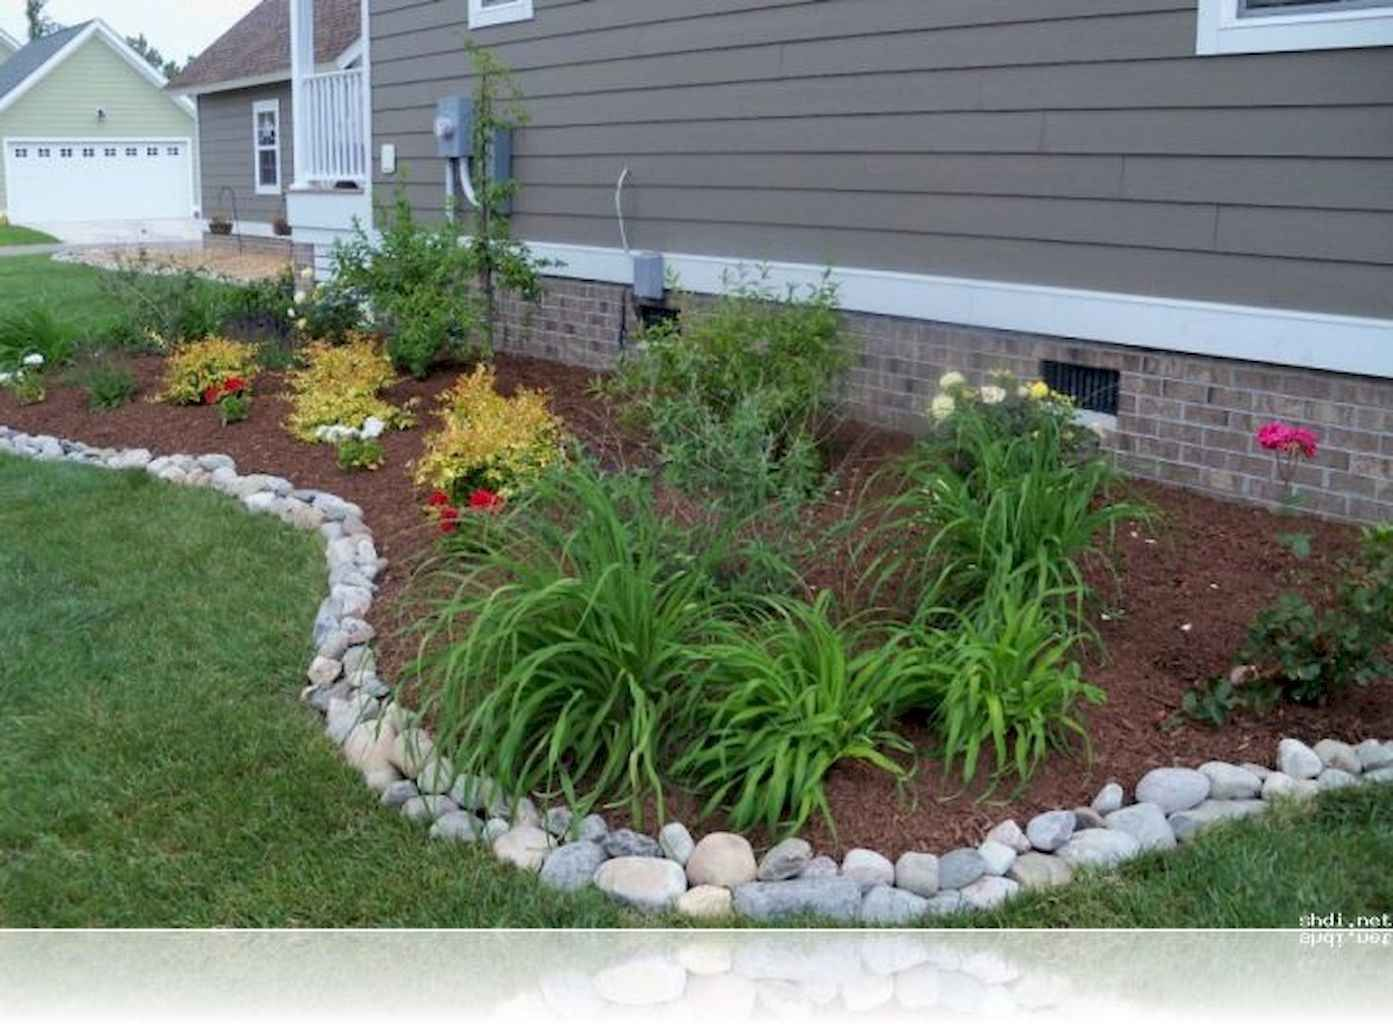 Beautiful Front Yard Rock Garden Landscaping Ideas 43 Homespecially Landscaping With Rocks Garden Layout Vegetable Raised Bed Vegetable Garden Layout